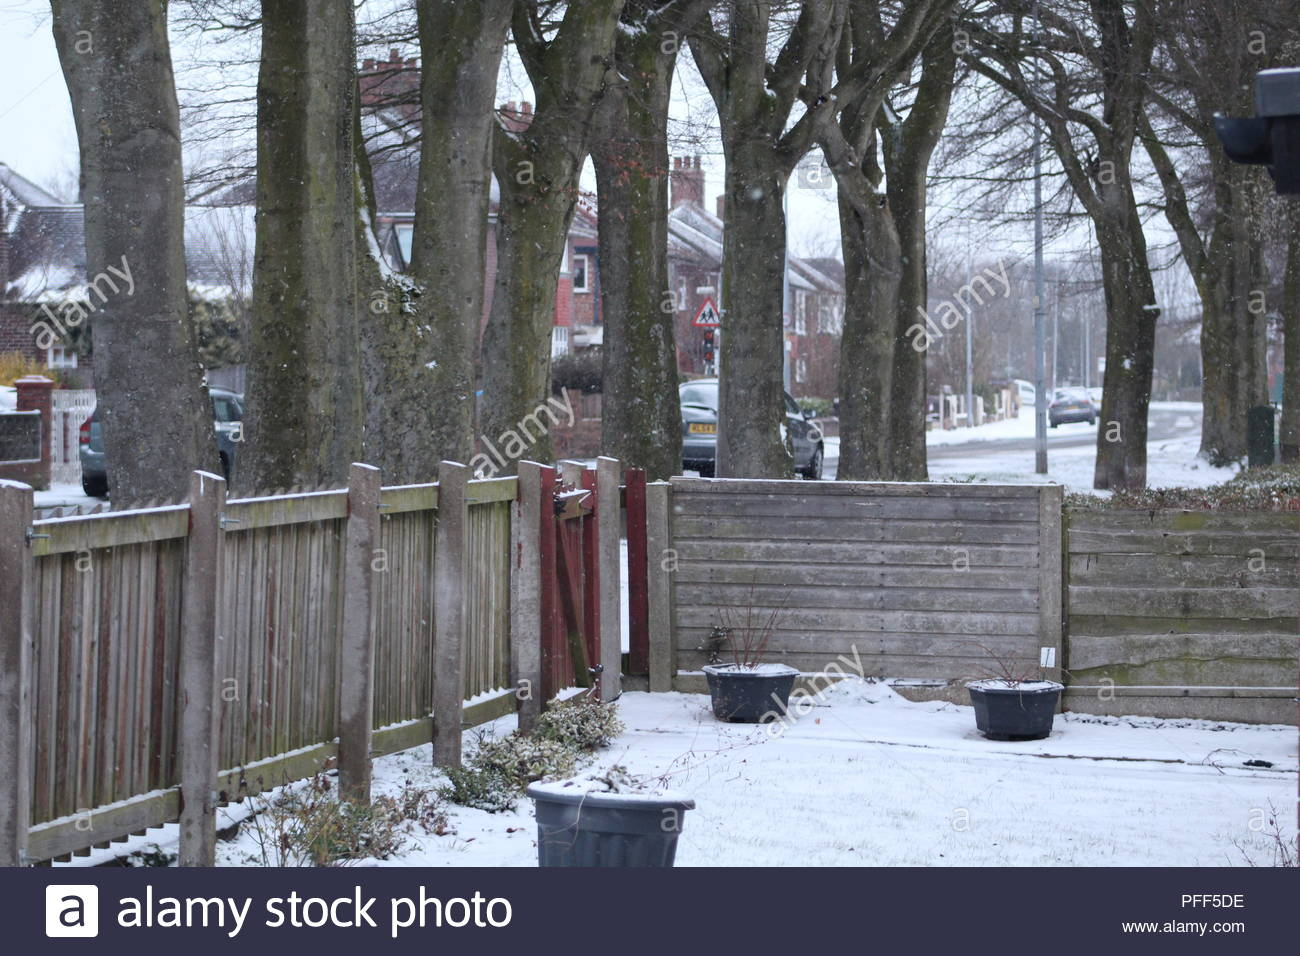 A snowy day in Irlam - Stock Image